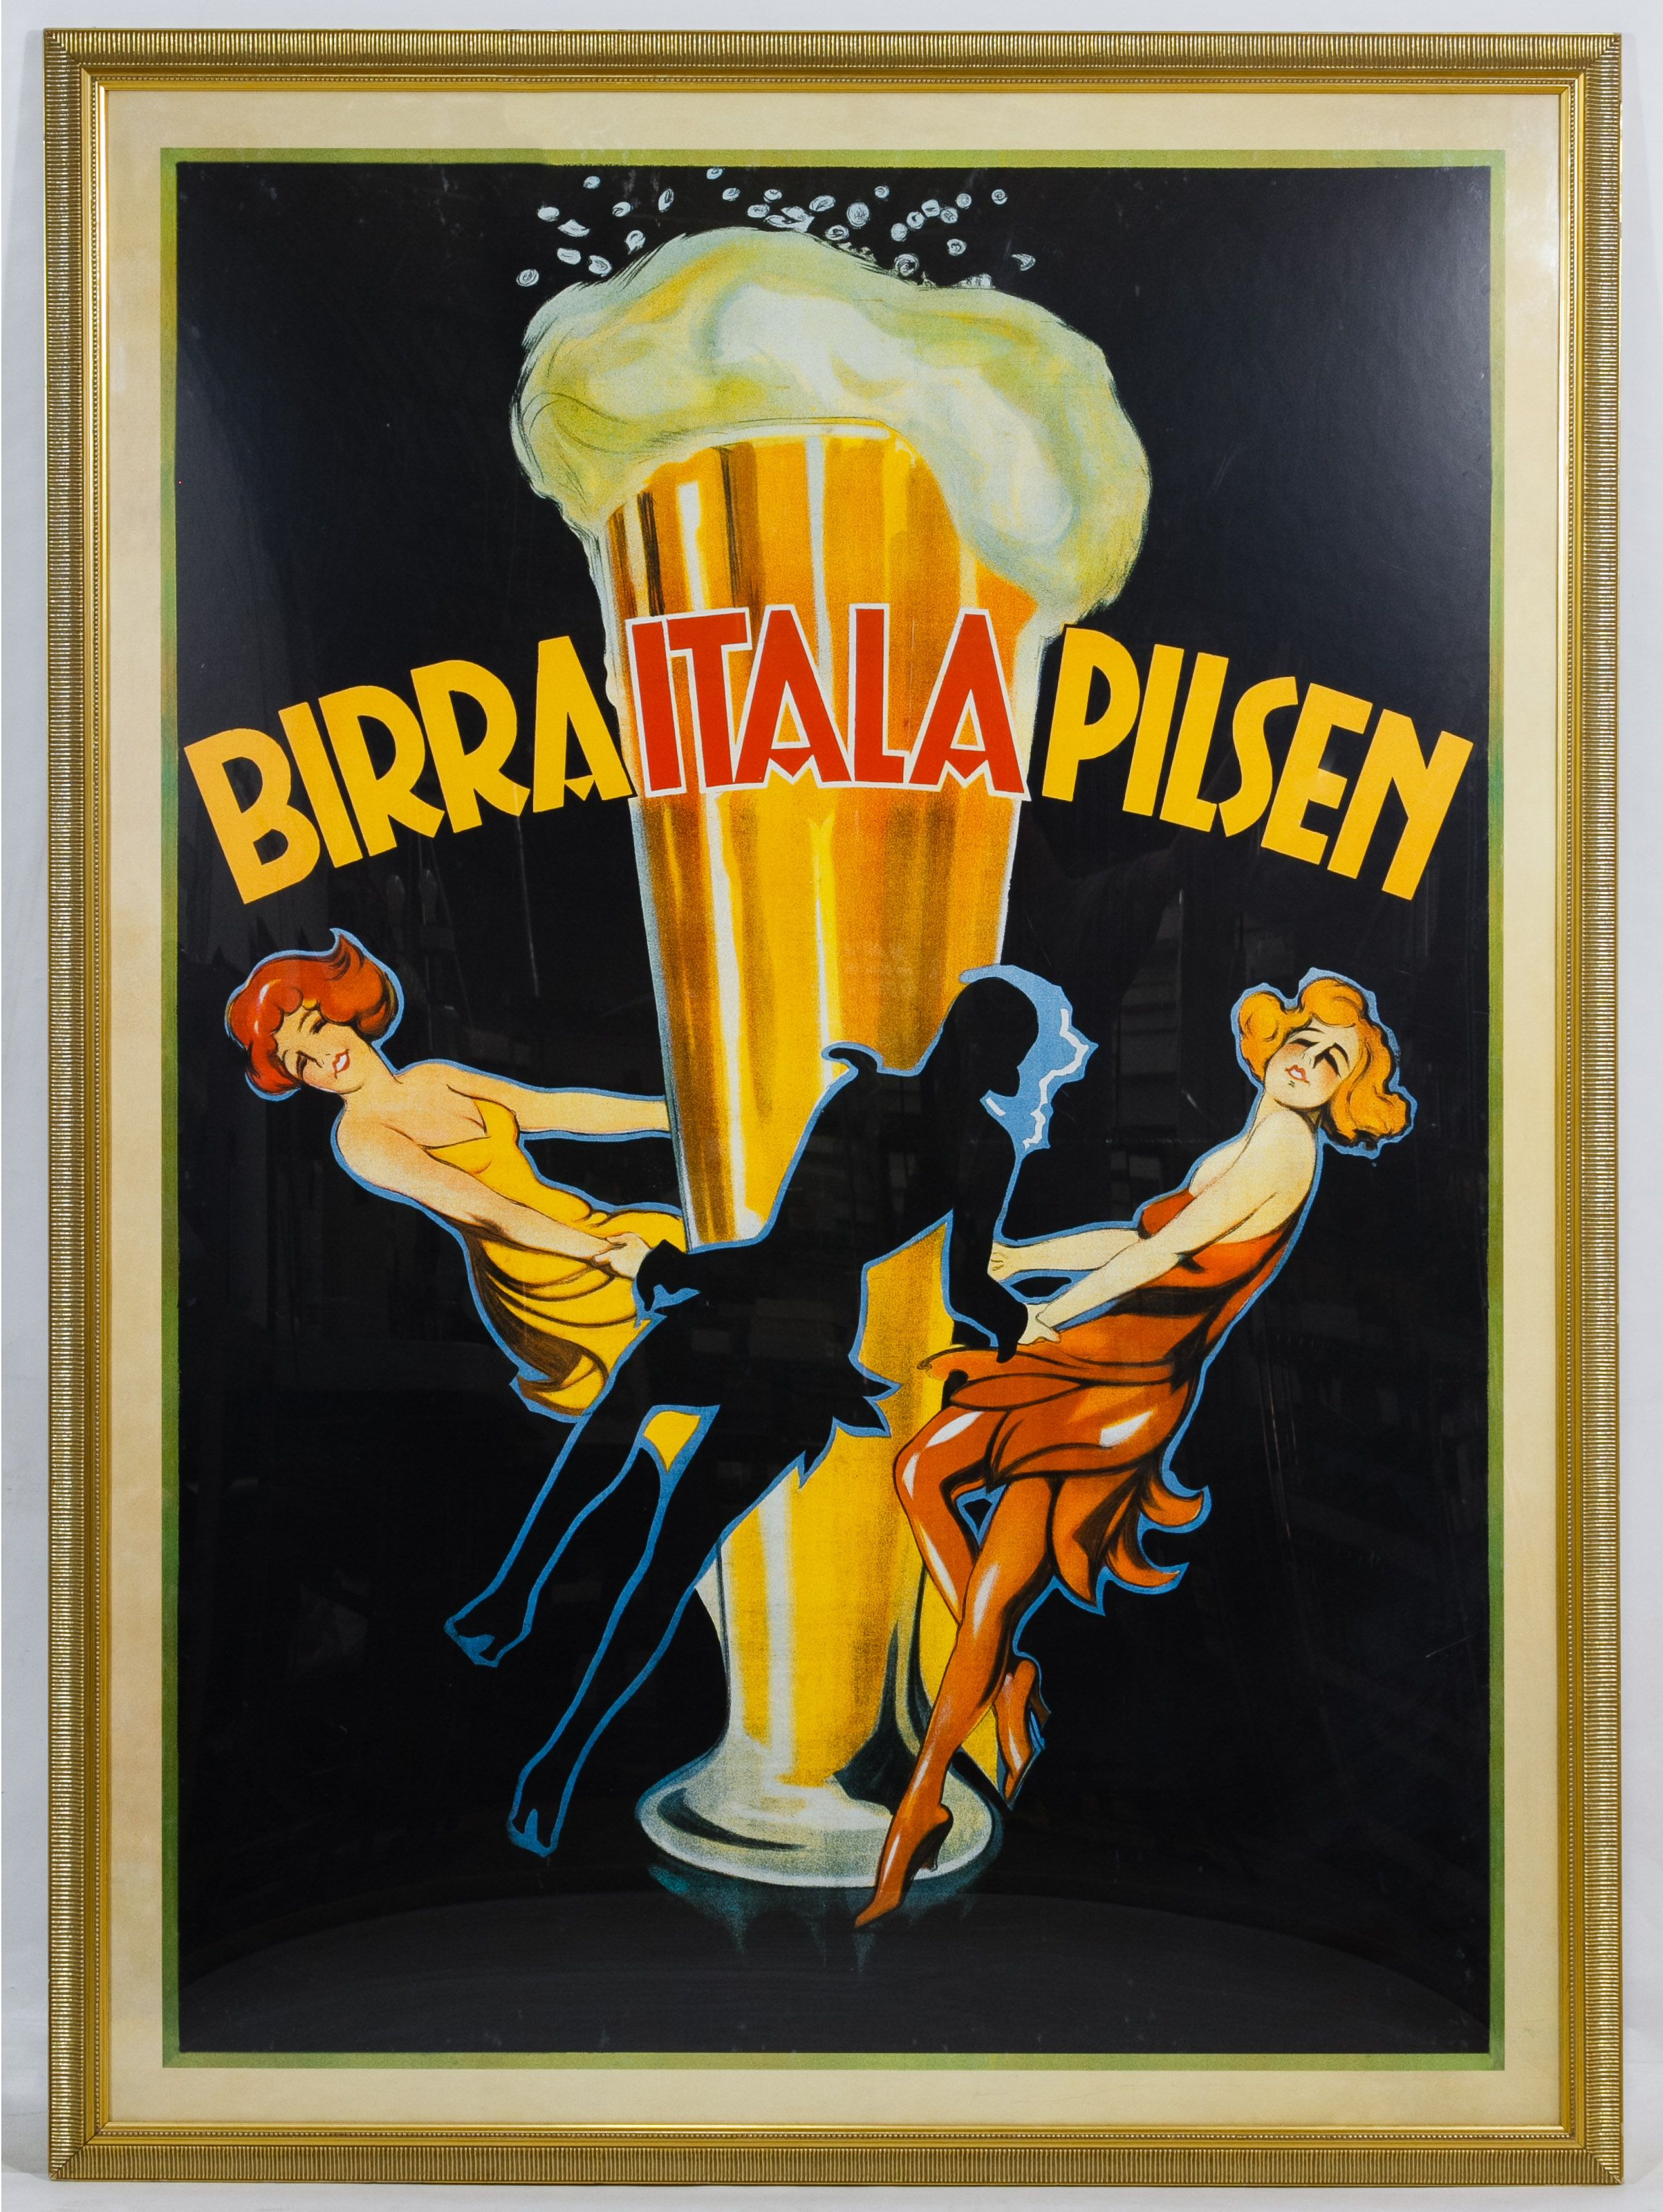 """Lot 570: Framed """"Birra Itala Pilsen"""" Reproduction Poster; c.1998, published in Italy by Top Art Inc., depicting three females dancing around a glass of beer"""